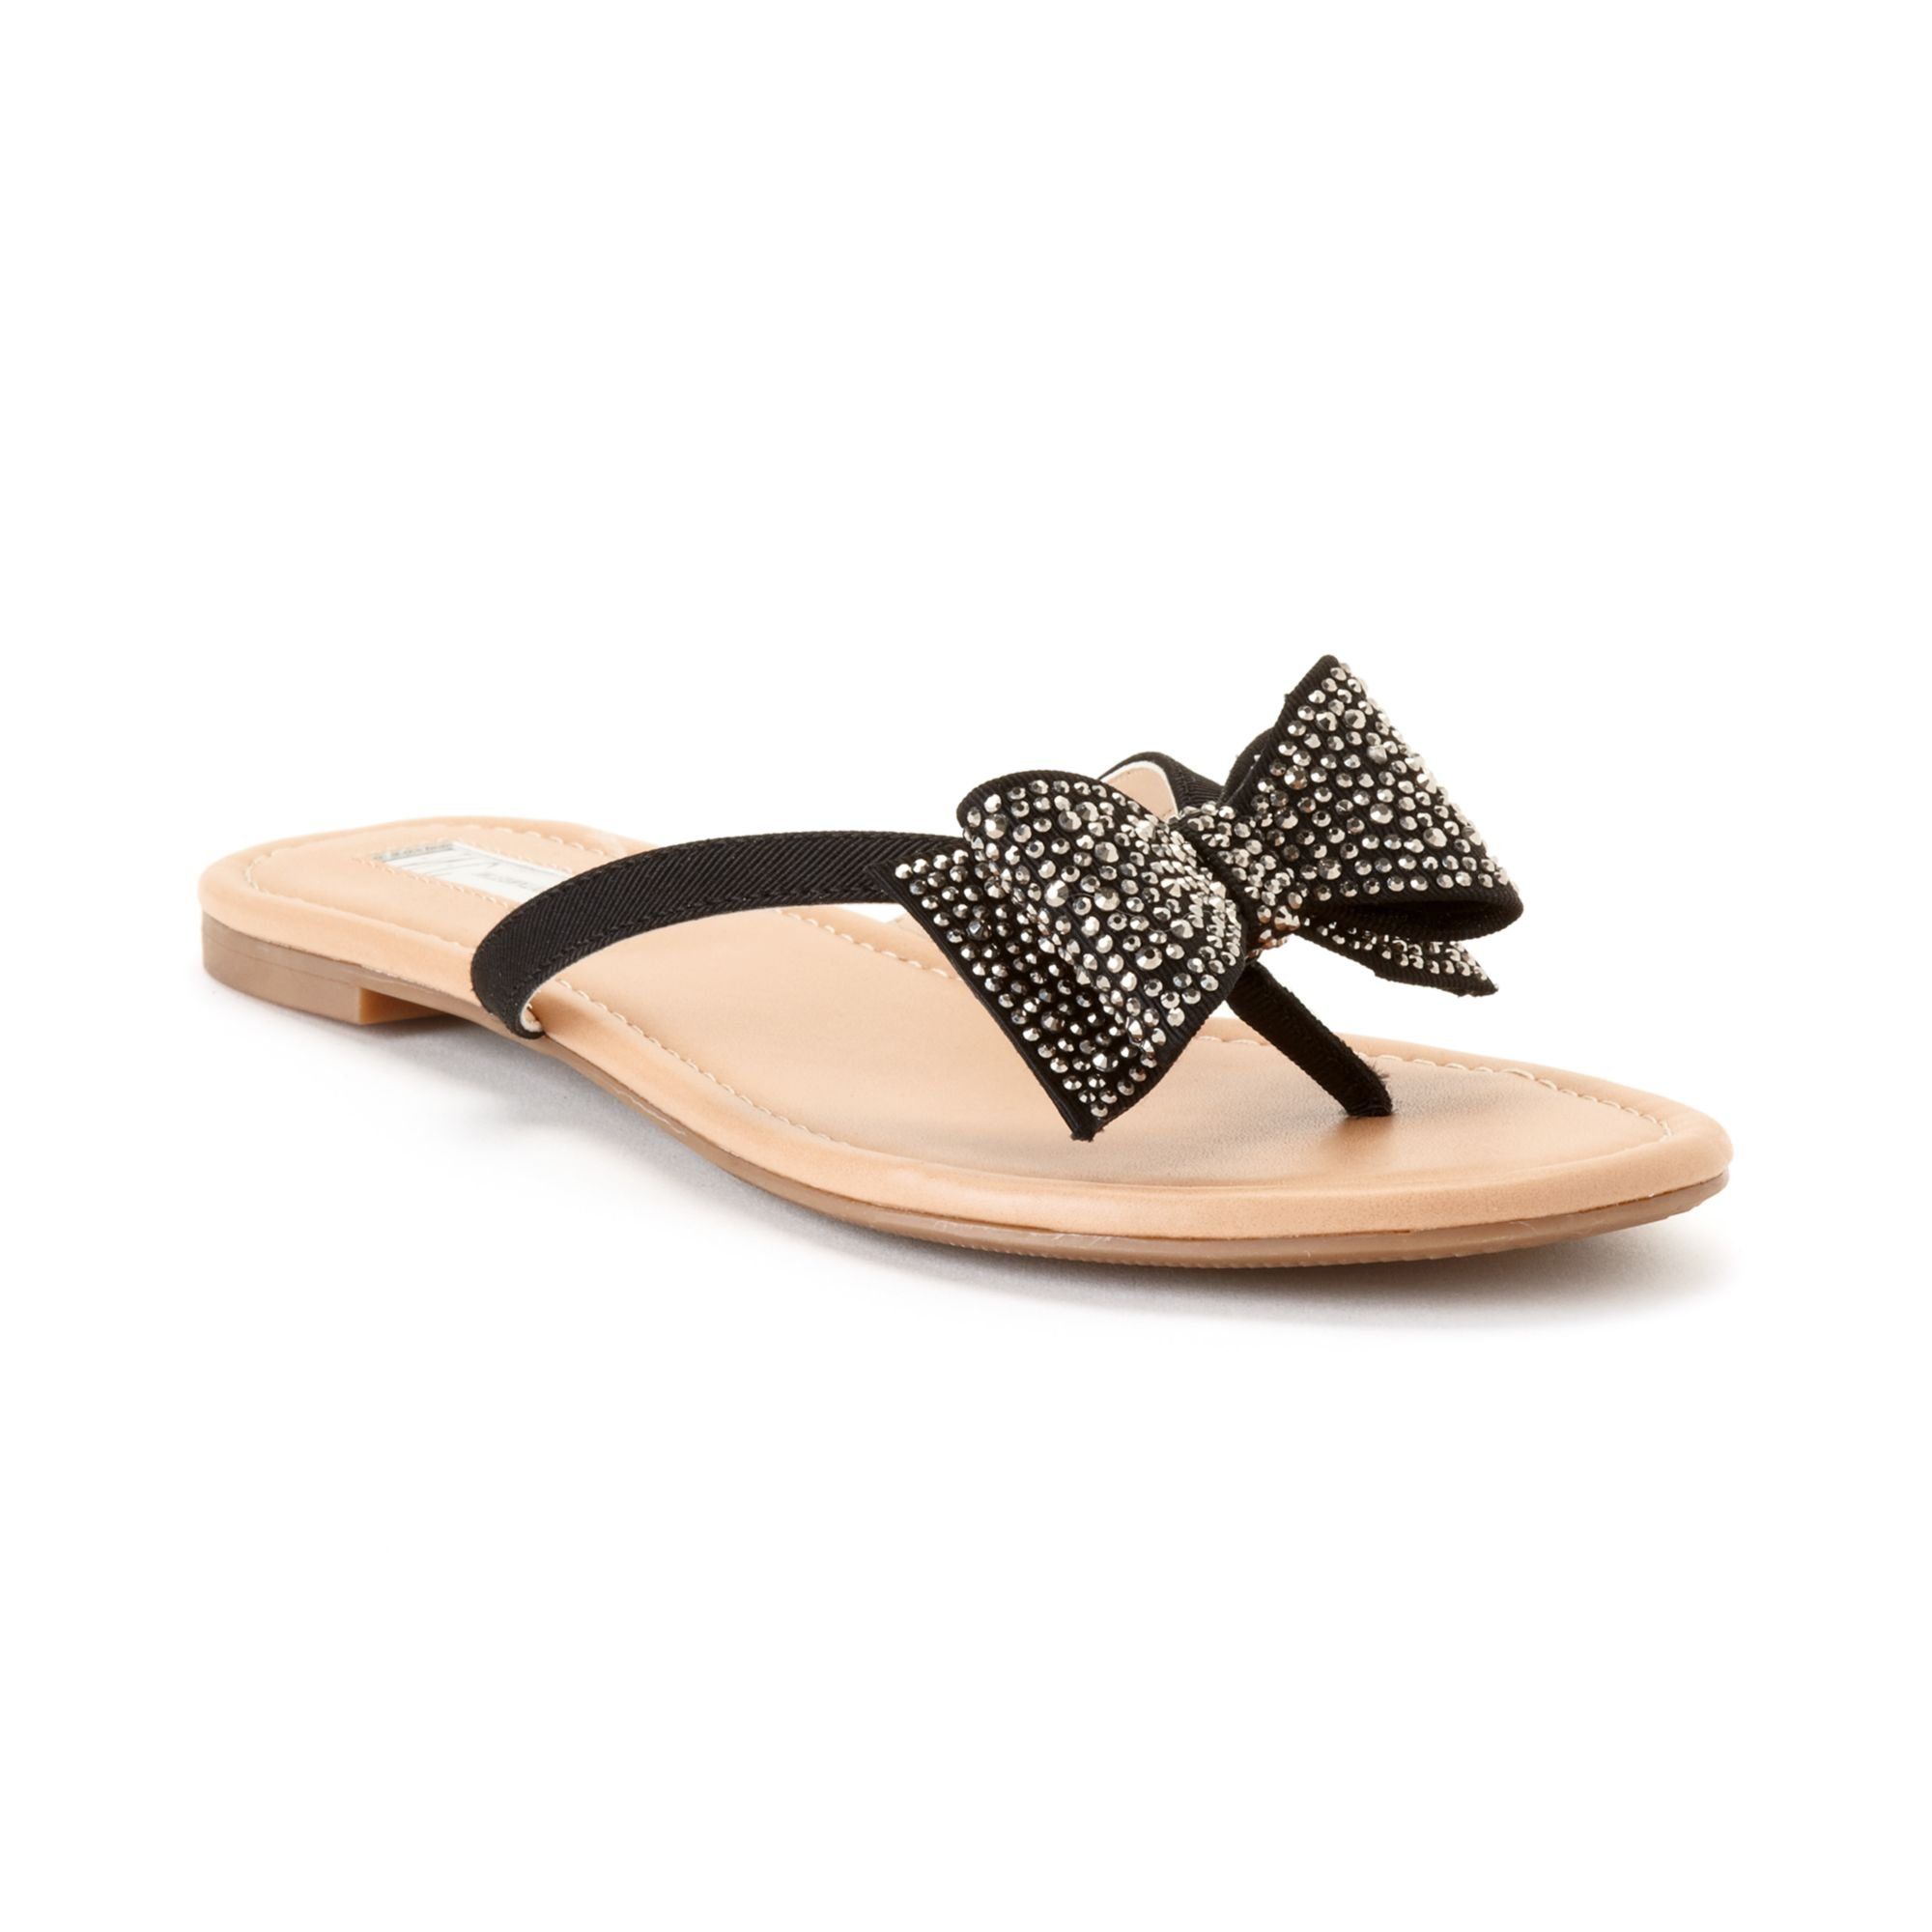 11839dee6304 Lyst - INC International Concepts Womens Maey Bow Thong Sandals in Black